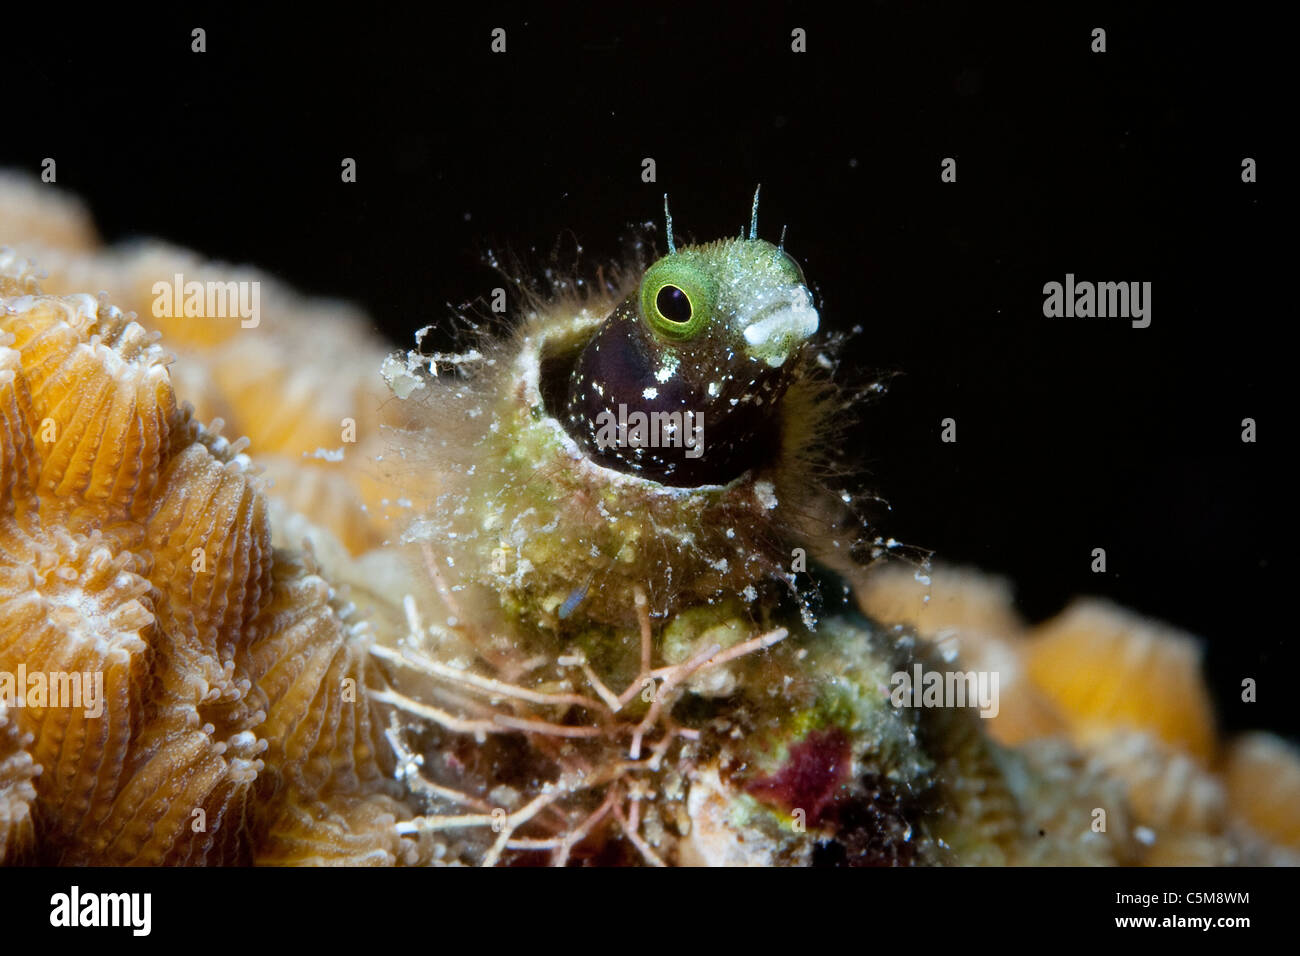 A spinyhead blenny fish peeks out from its tube home underwater at Roatan, part of the Mesoamerican Reef off of - Stock Image